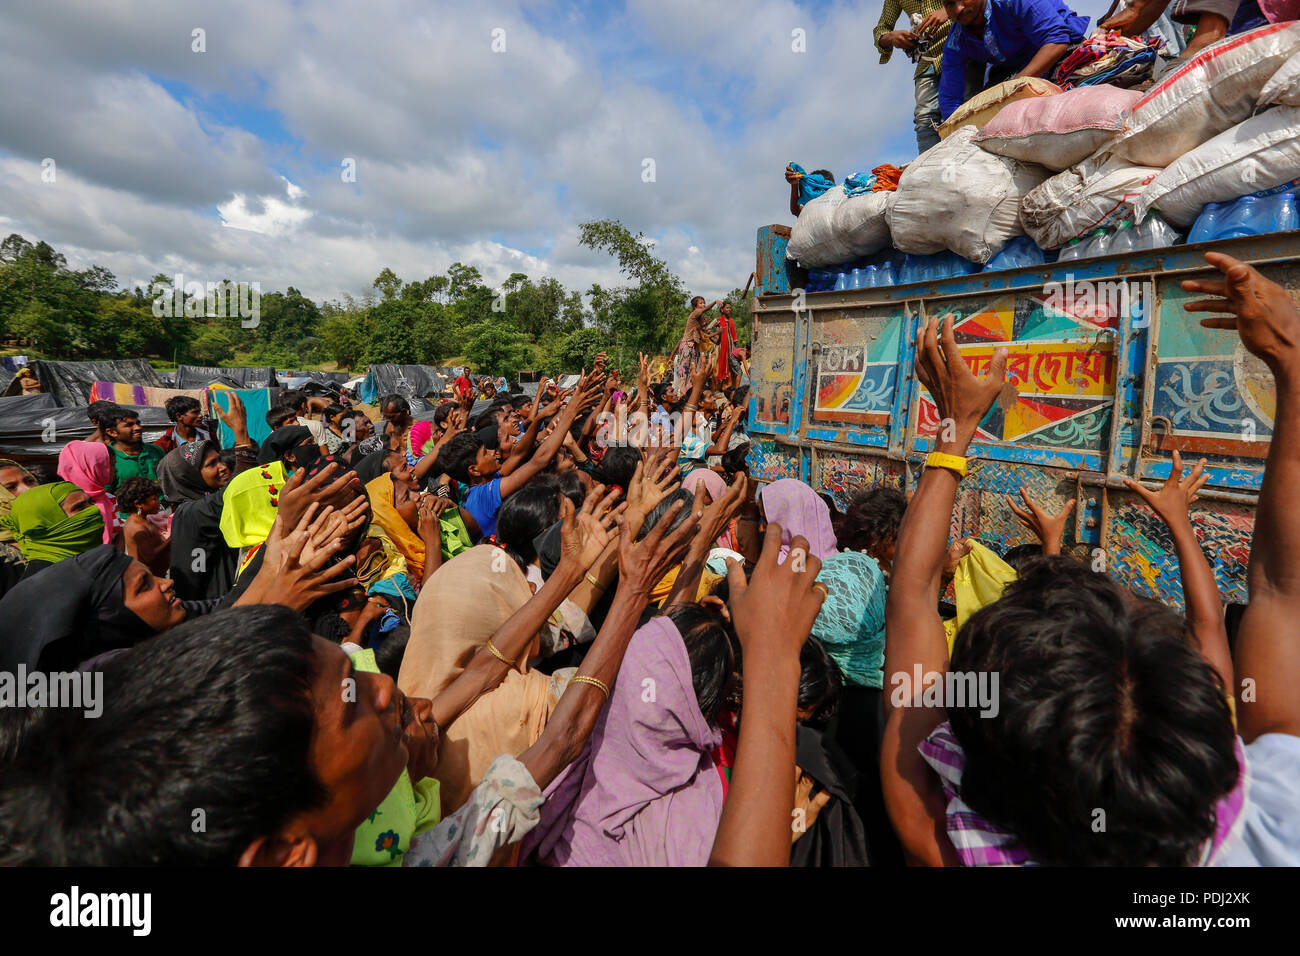 Rohingya refugees scramble for relief materials at Balukhali in Ukhia, Cox's Bazar, Bangladesh - Stock Image